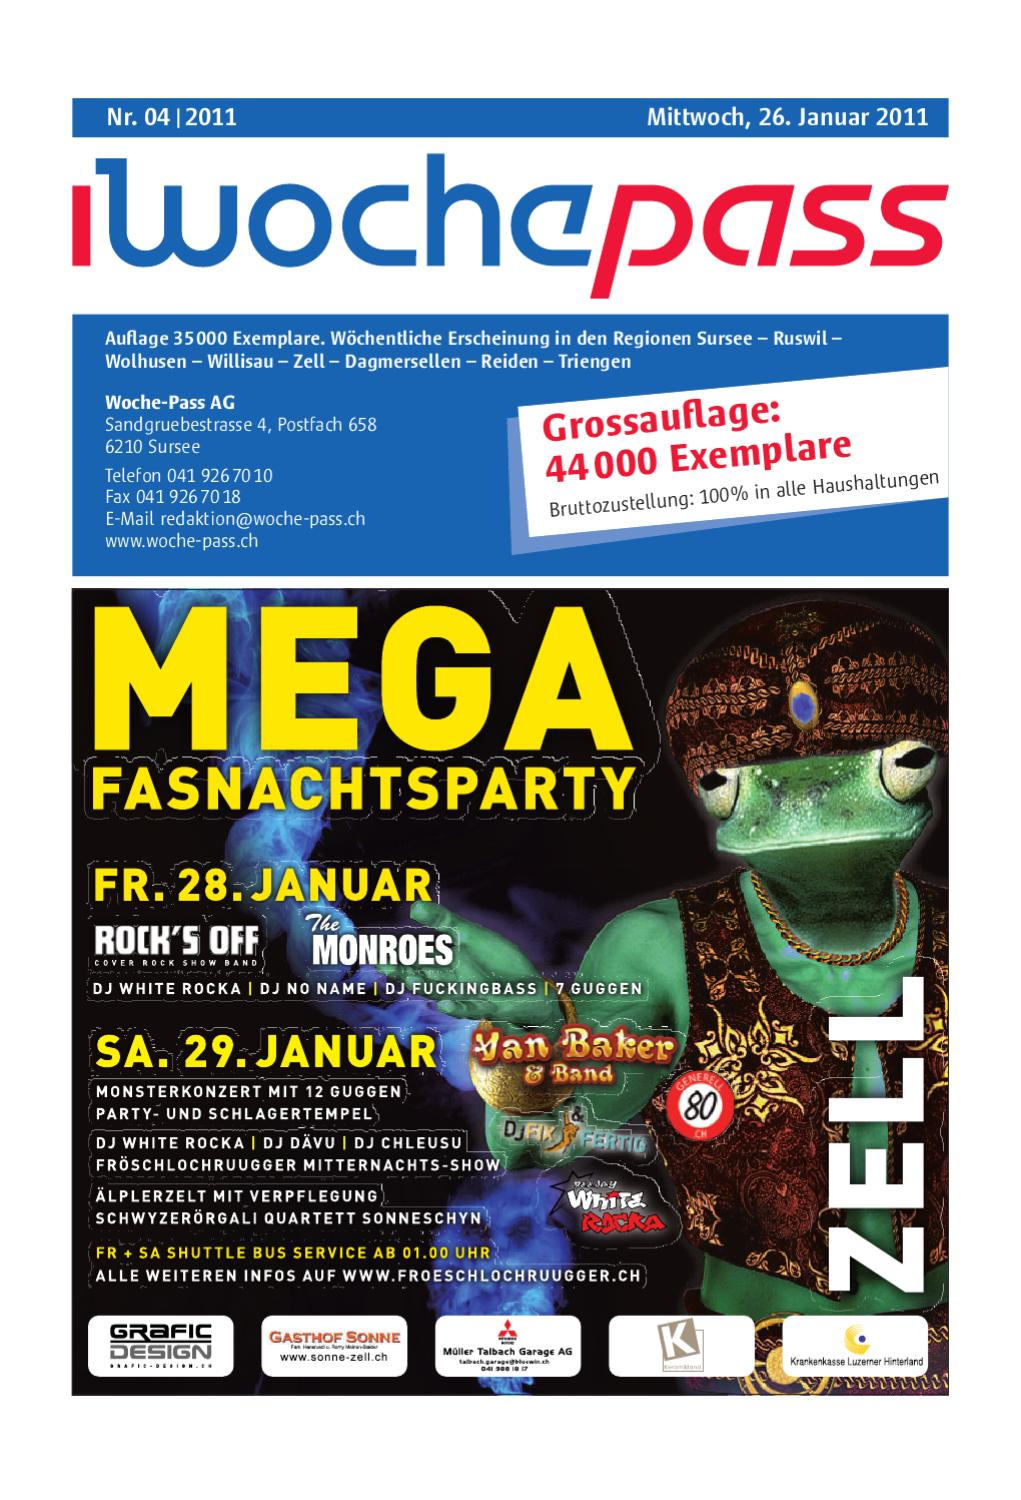 Woche-Pass | KW 04 | 26. Januar 2011 by Woche-Pass AG - issuu